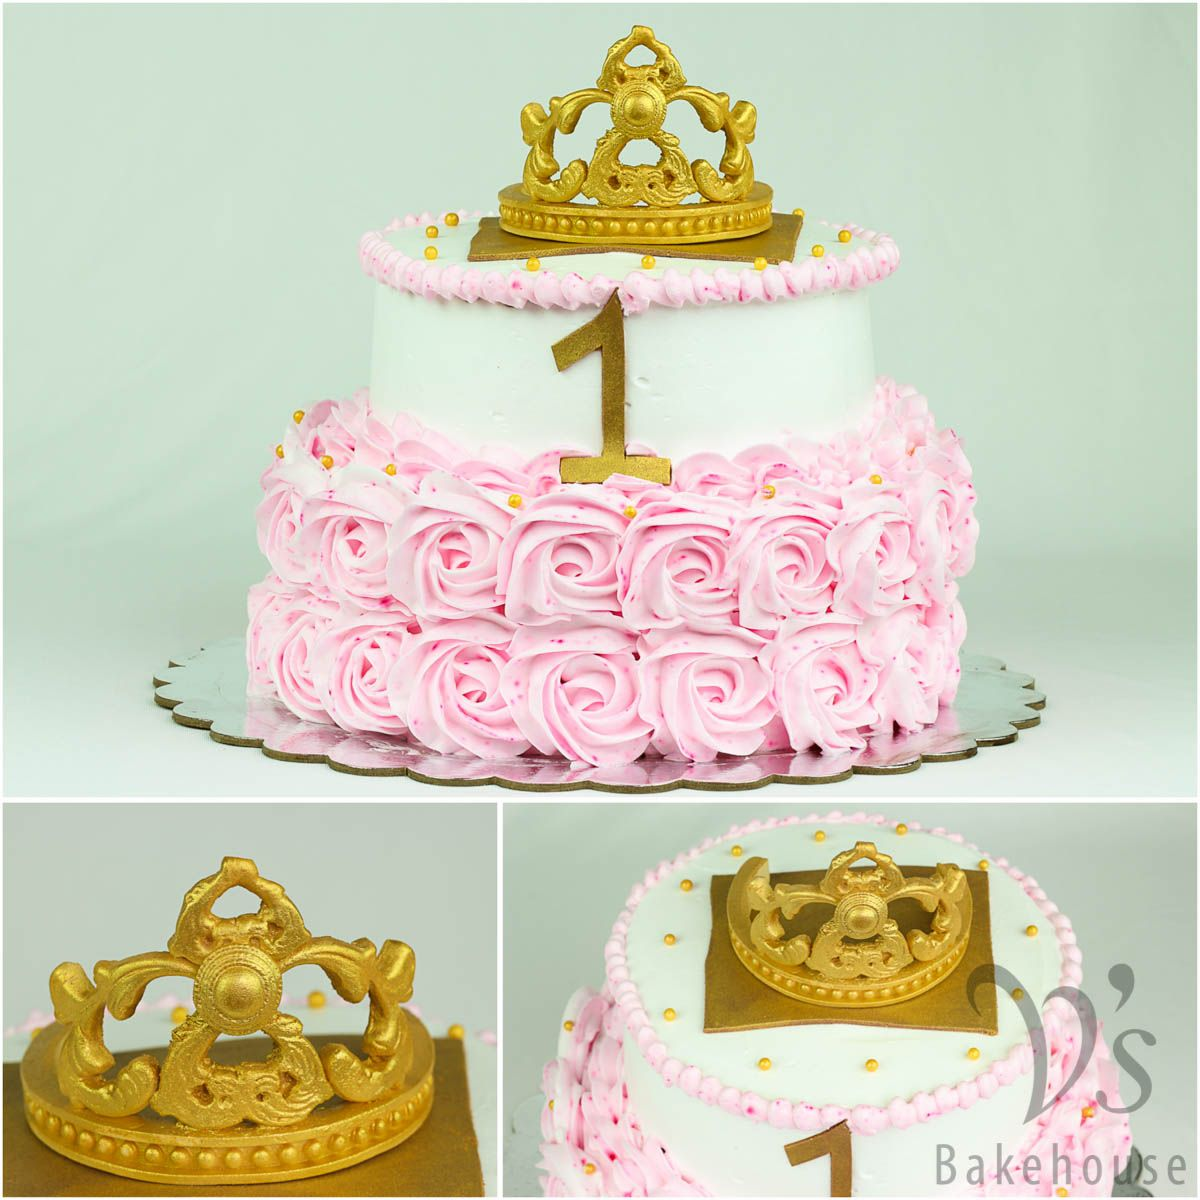 First Birthday Cake For Princess Jyothsna With A Fondant Tiara. Its A Dark Chocolate Cake Filled